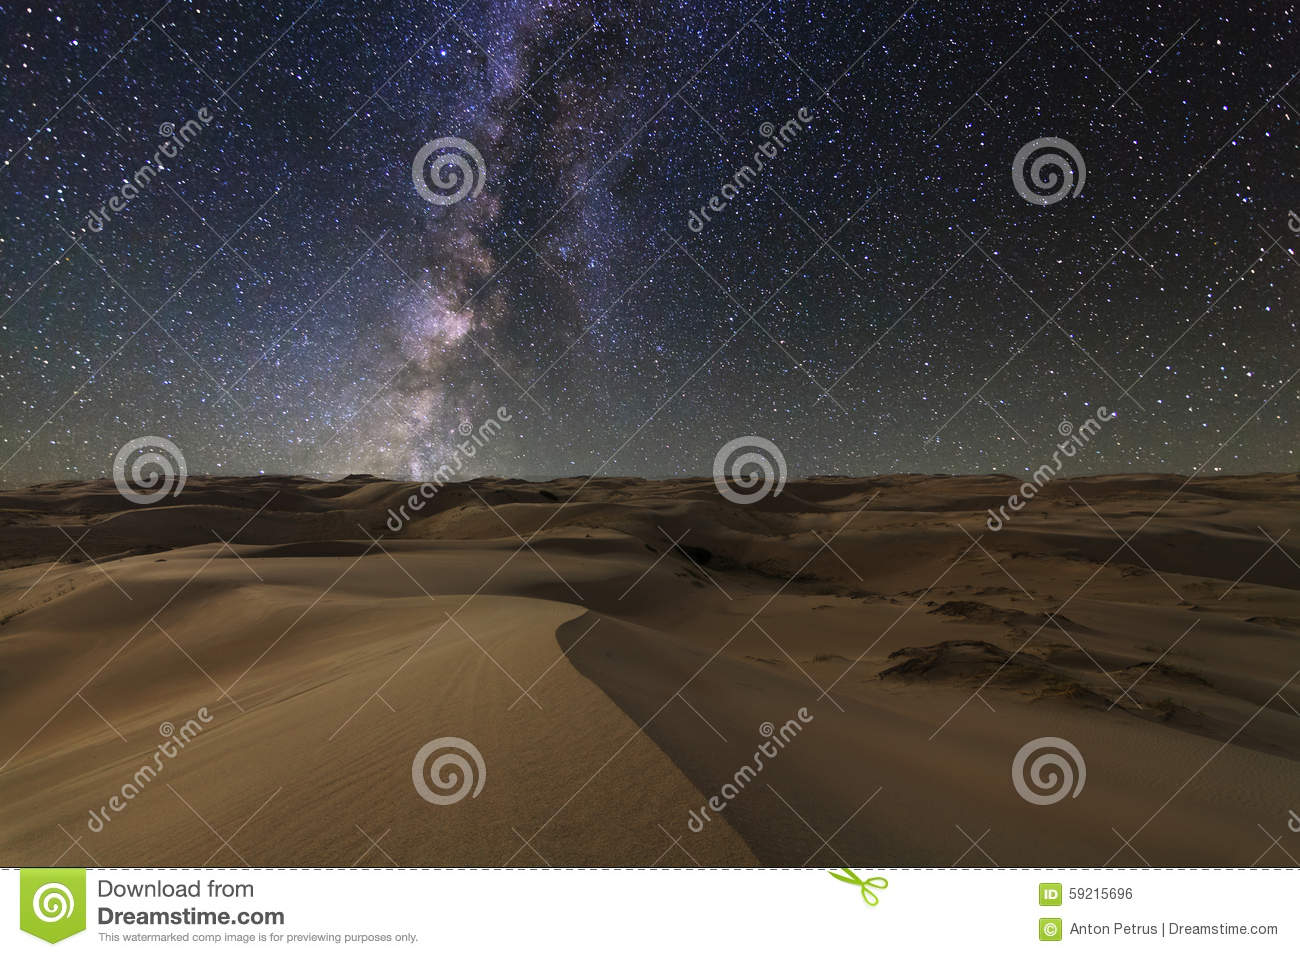 Amazing views of the Gobi desert under the starry sky.